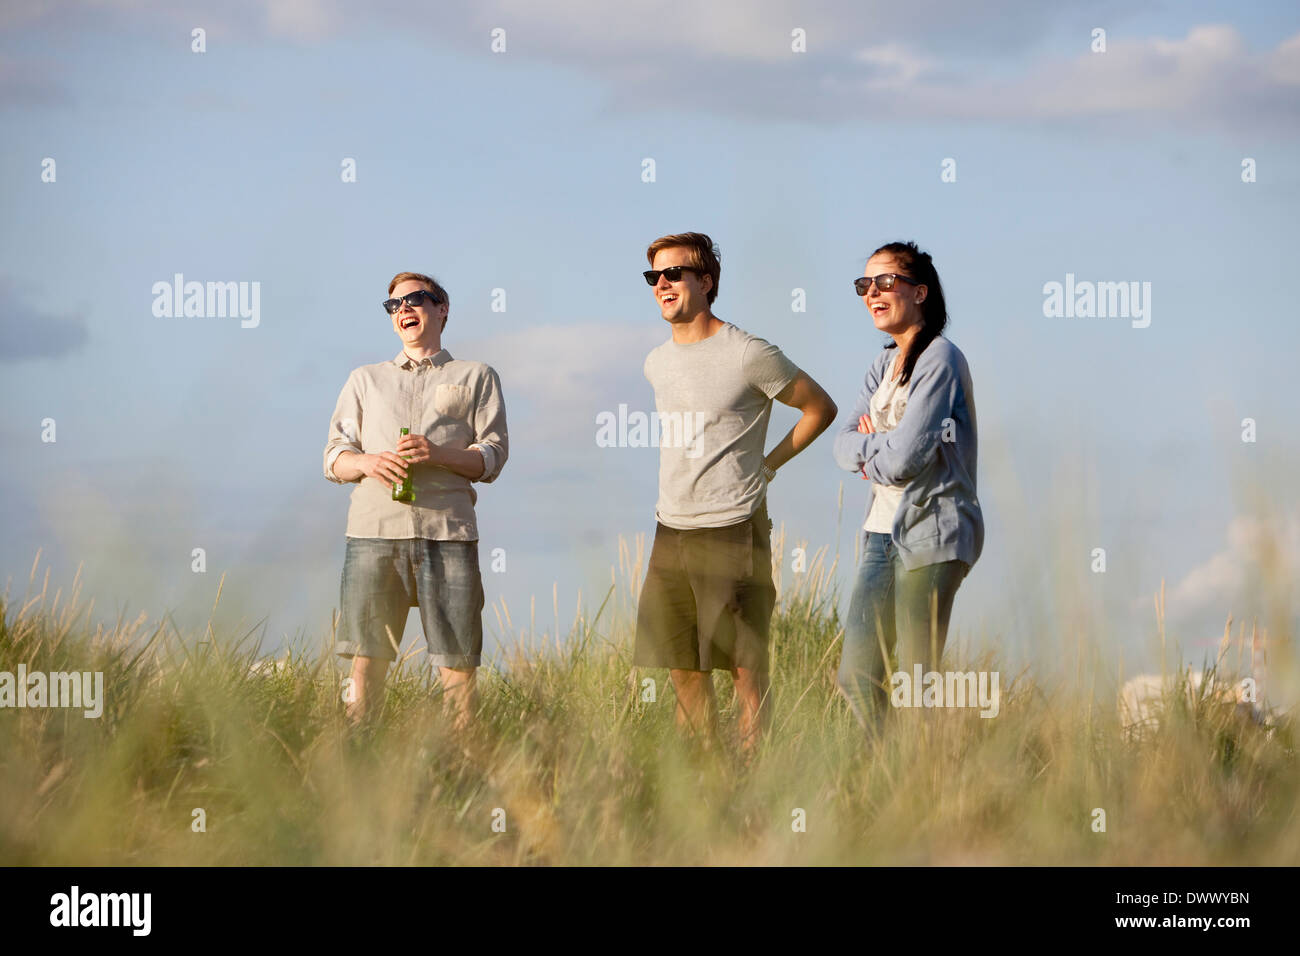 Young friends laughing against sky - Stock Image